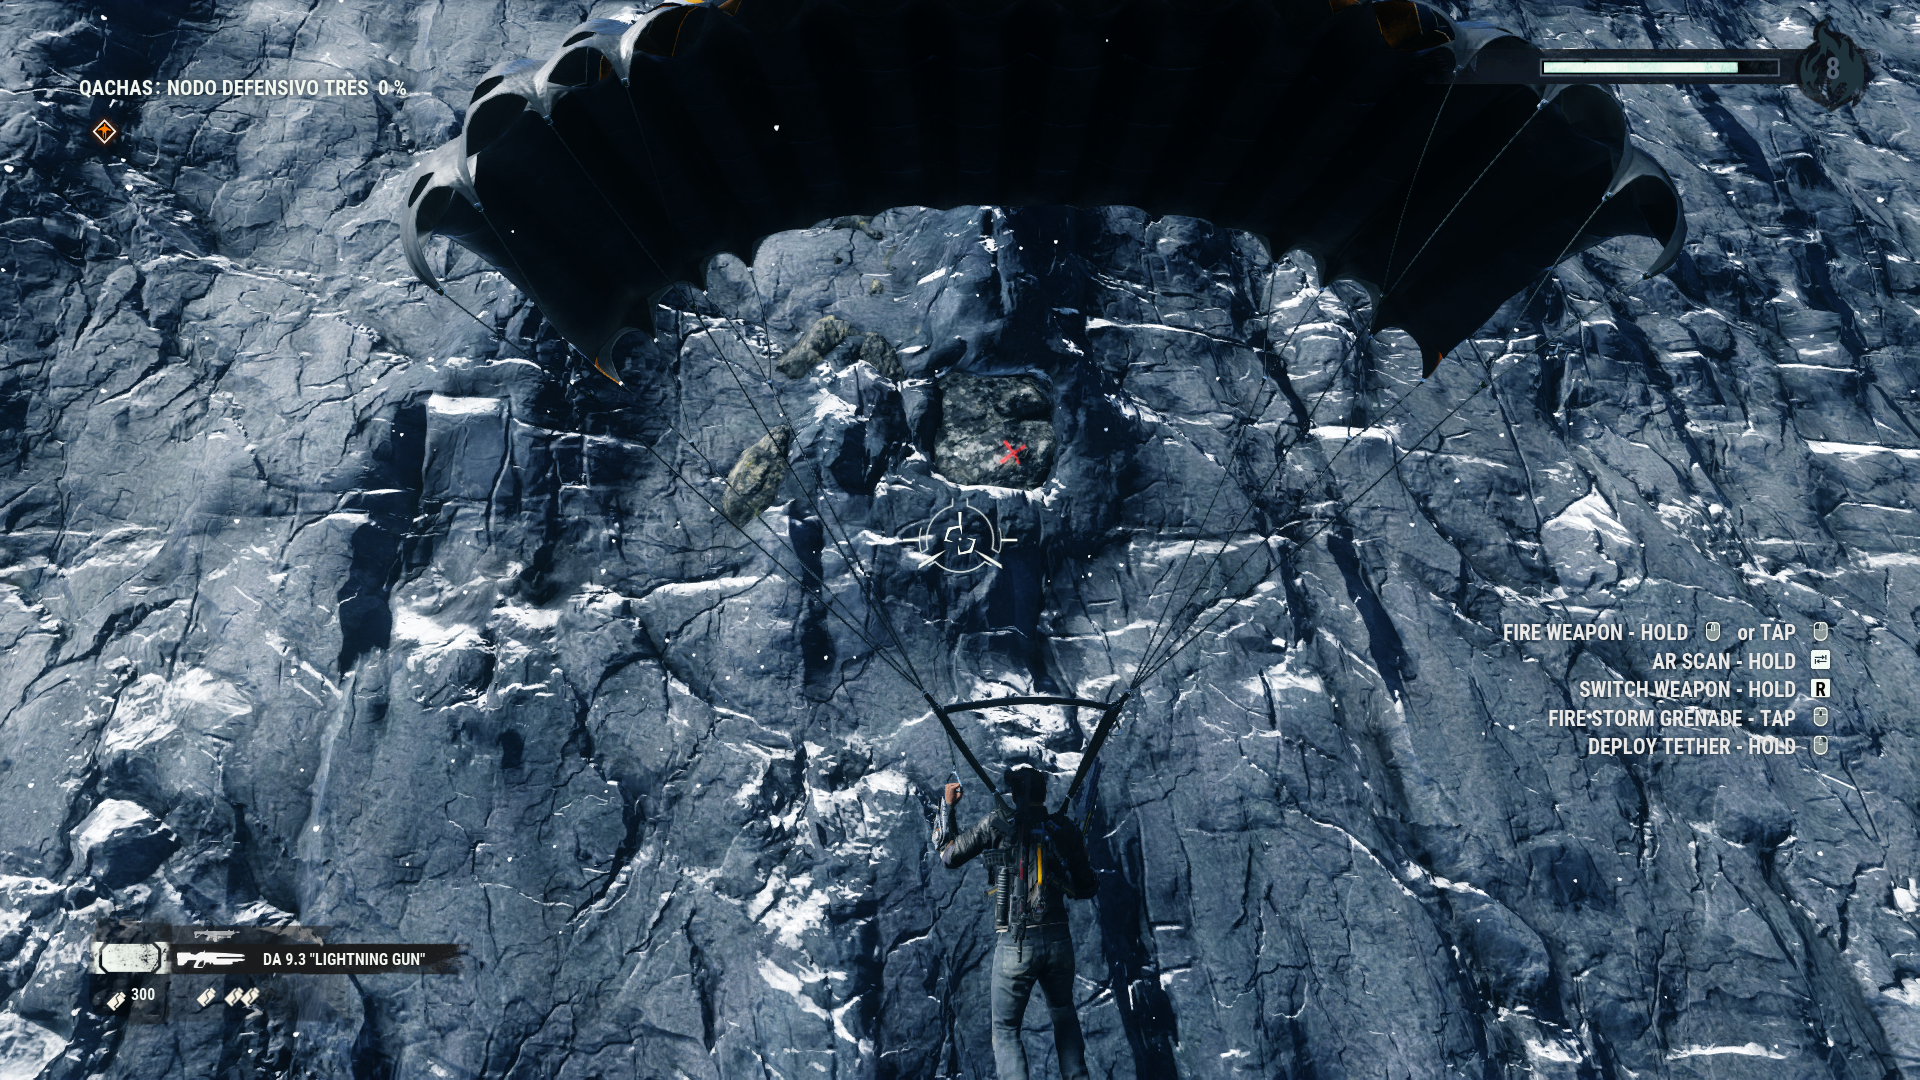 moon base just cause 4 location - photo #39